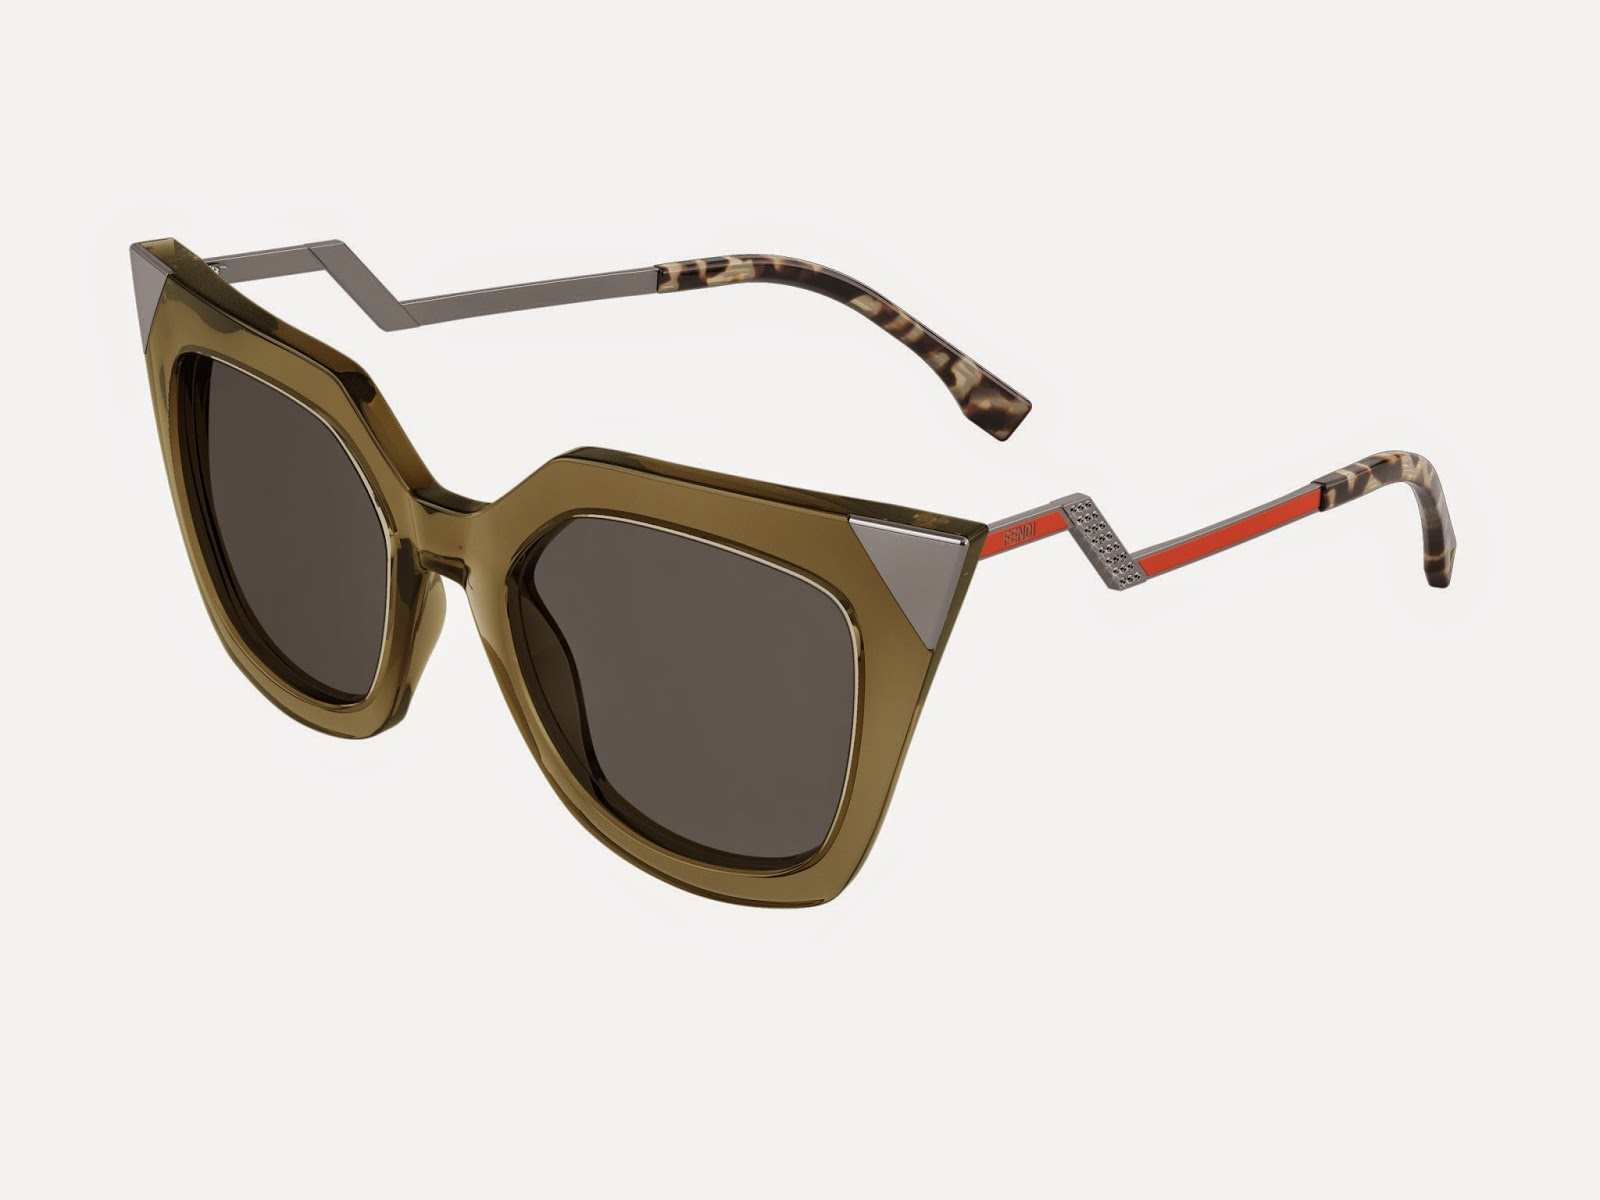 Gucci Safilo Eyeglass Frames : Kee Hua Chee Live!: SAFILO DEFINES STYLISH EYEWEAR FOR ...